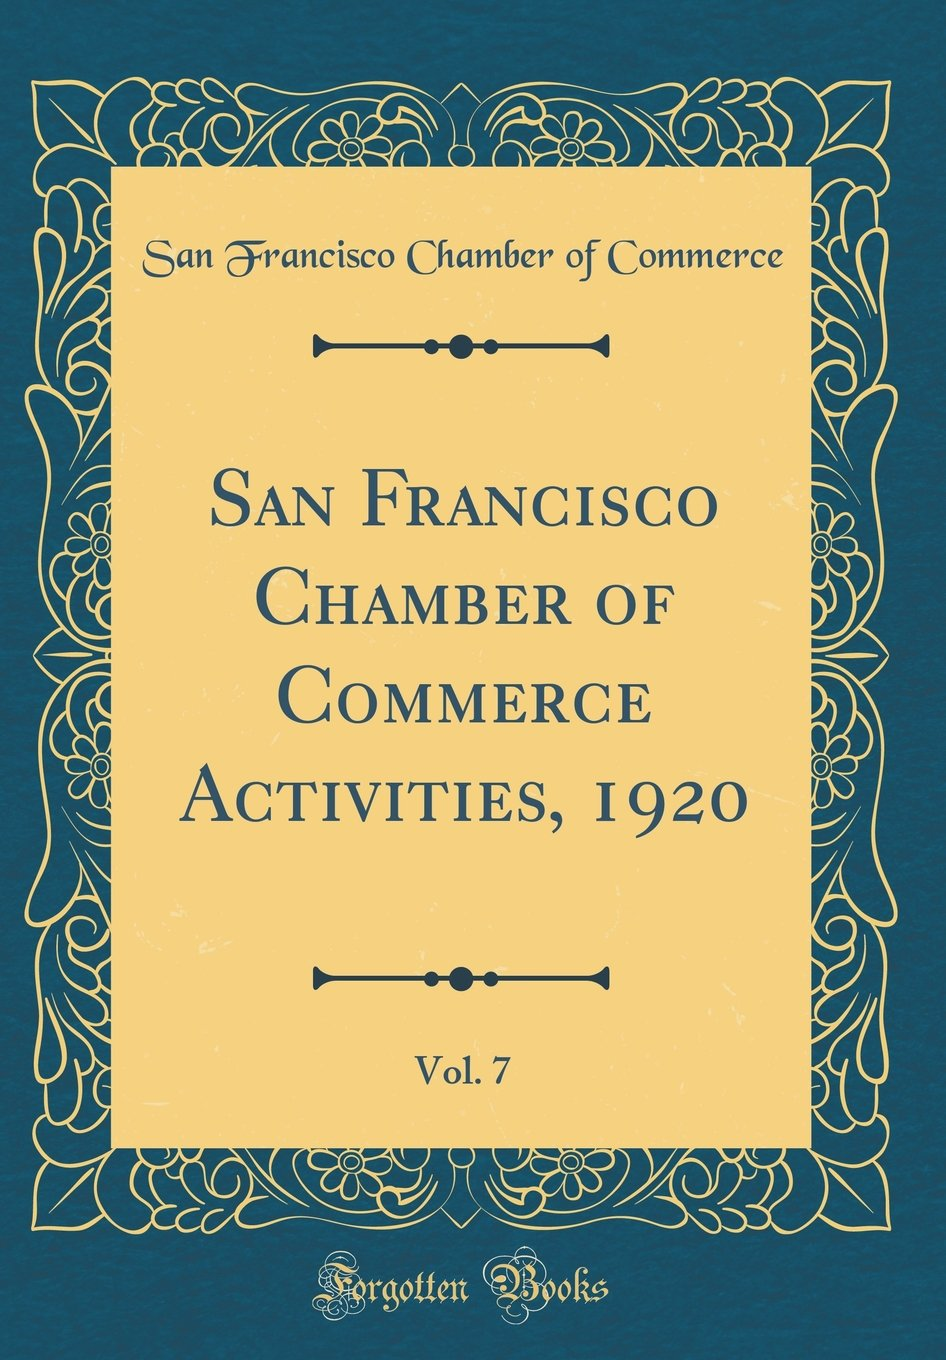 San Francisco Chamber of Commerce Activities, 1920, Vol. 7 (Classic Reprint) PDF